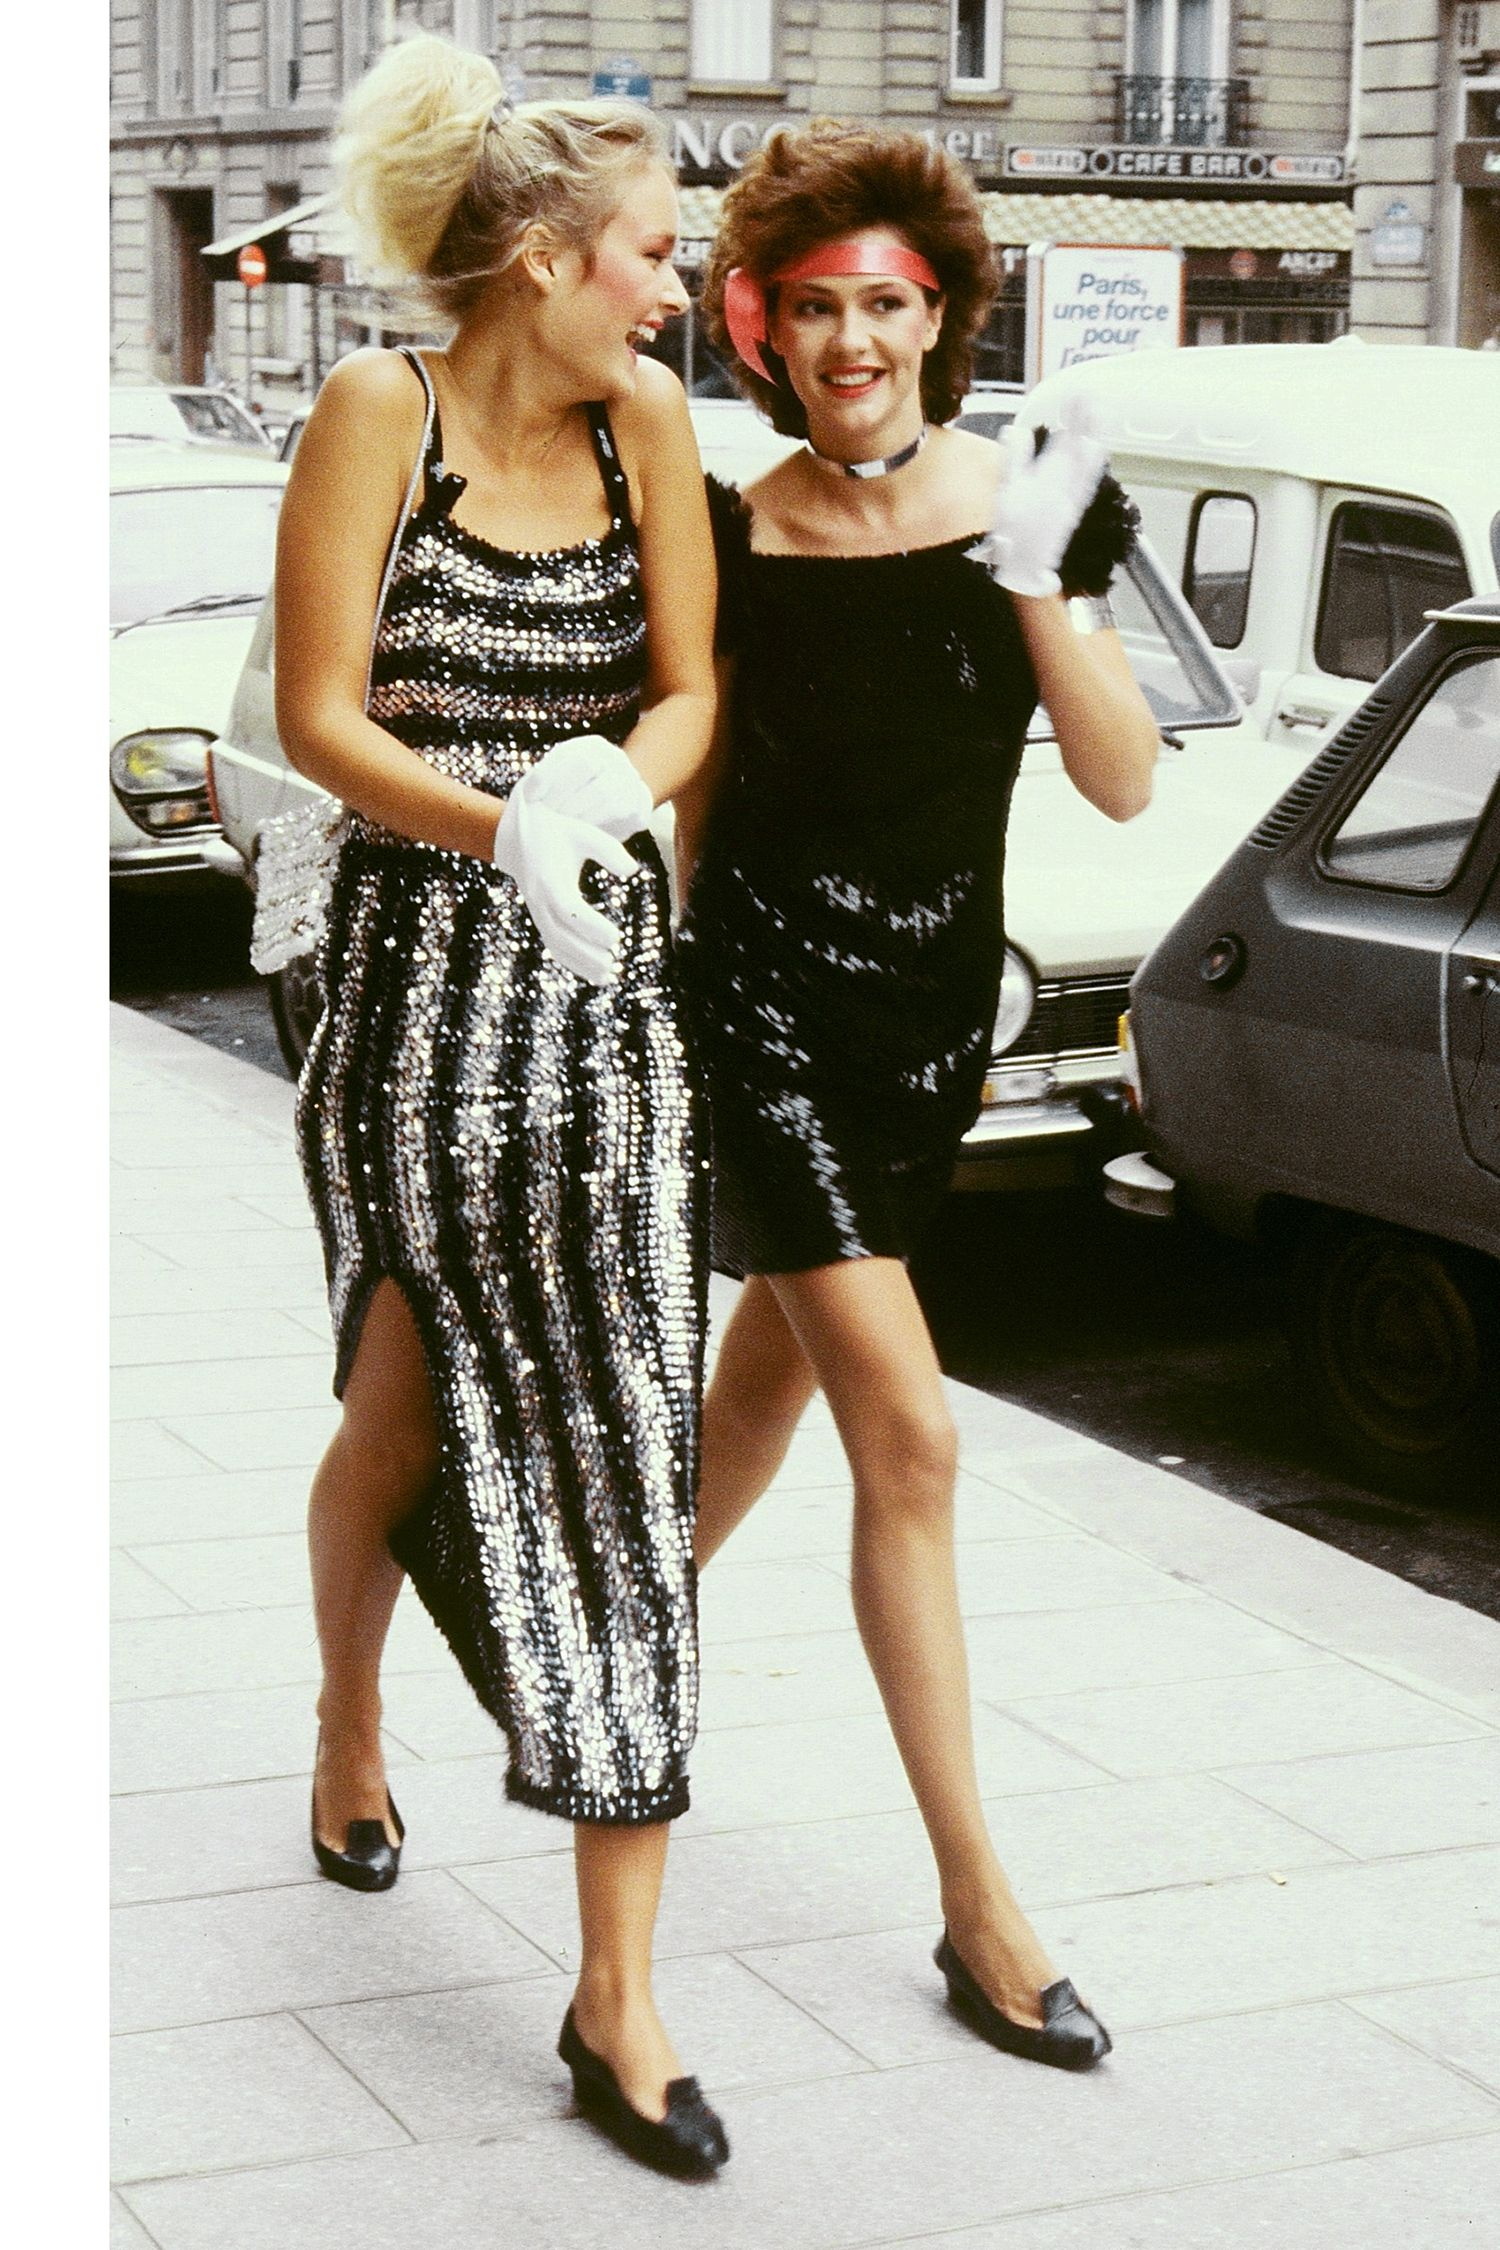 The '80s Are Back: 50 Fashion Moments To Relive From The